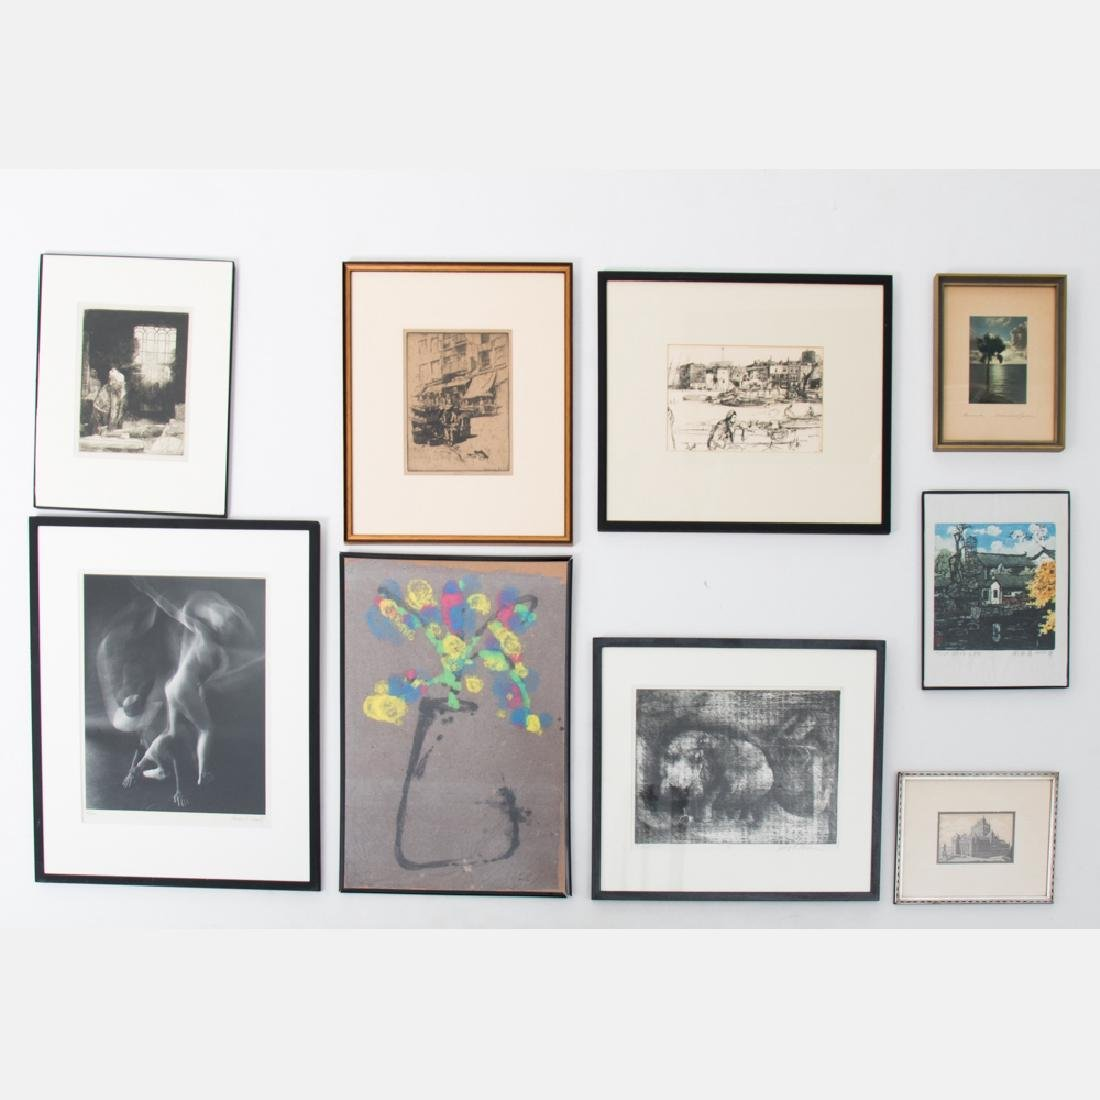 A Collection of Framed Decorative Prints and Photograph